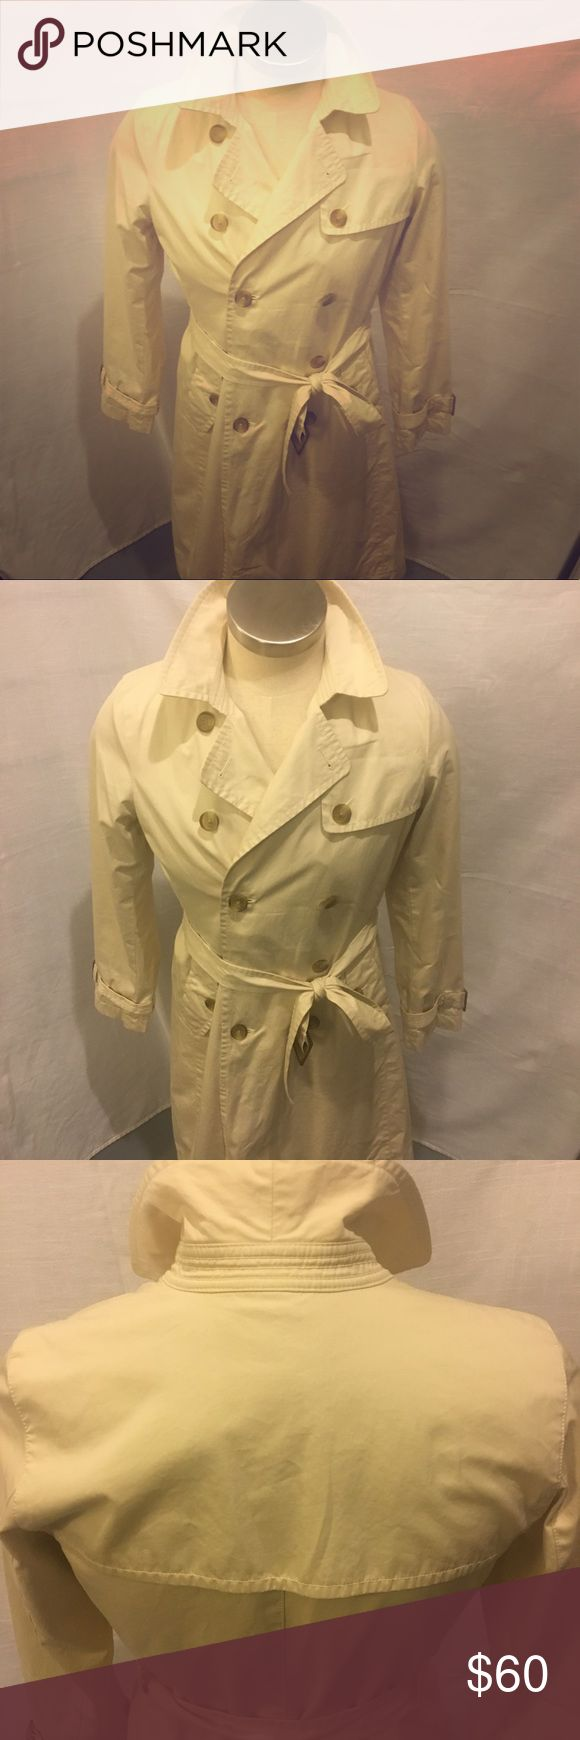 Banana Republic Classic Trench Coat Just in time for the rainy season  Excellent condition, like new  They took their ever-popular trench and made it a double-breasted closure. Plus, they added a water-resistant coating so you're always ready for wet weather. Long sleeves with buckle cuffs.  Buckle belt with back belt loops. Front angled pockets. Fully lined. Banana Republic Jackets & Coats Trench Coats